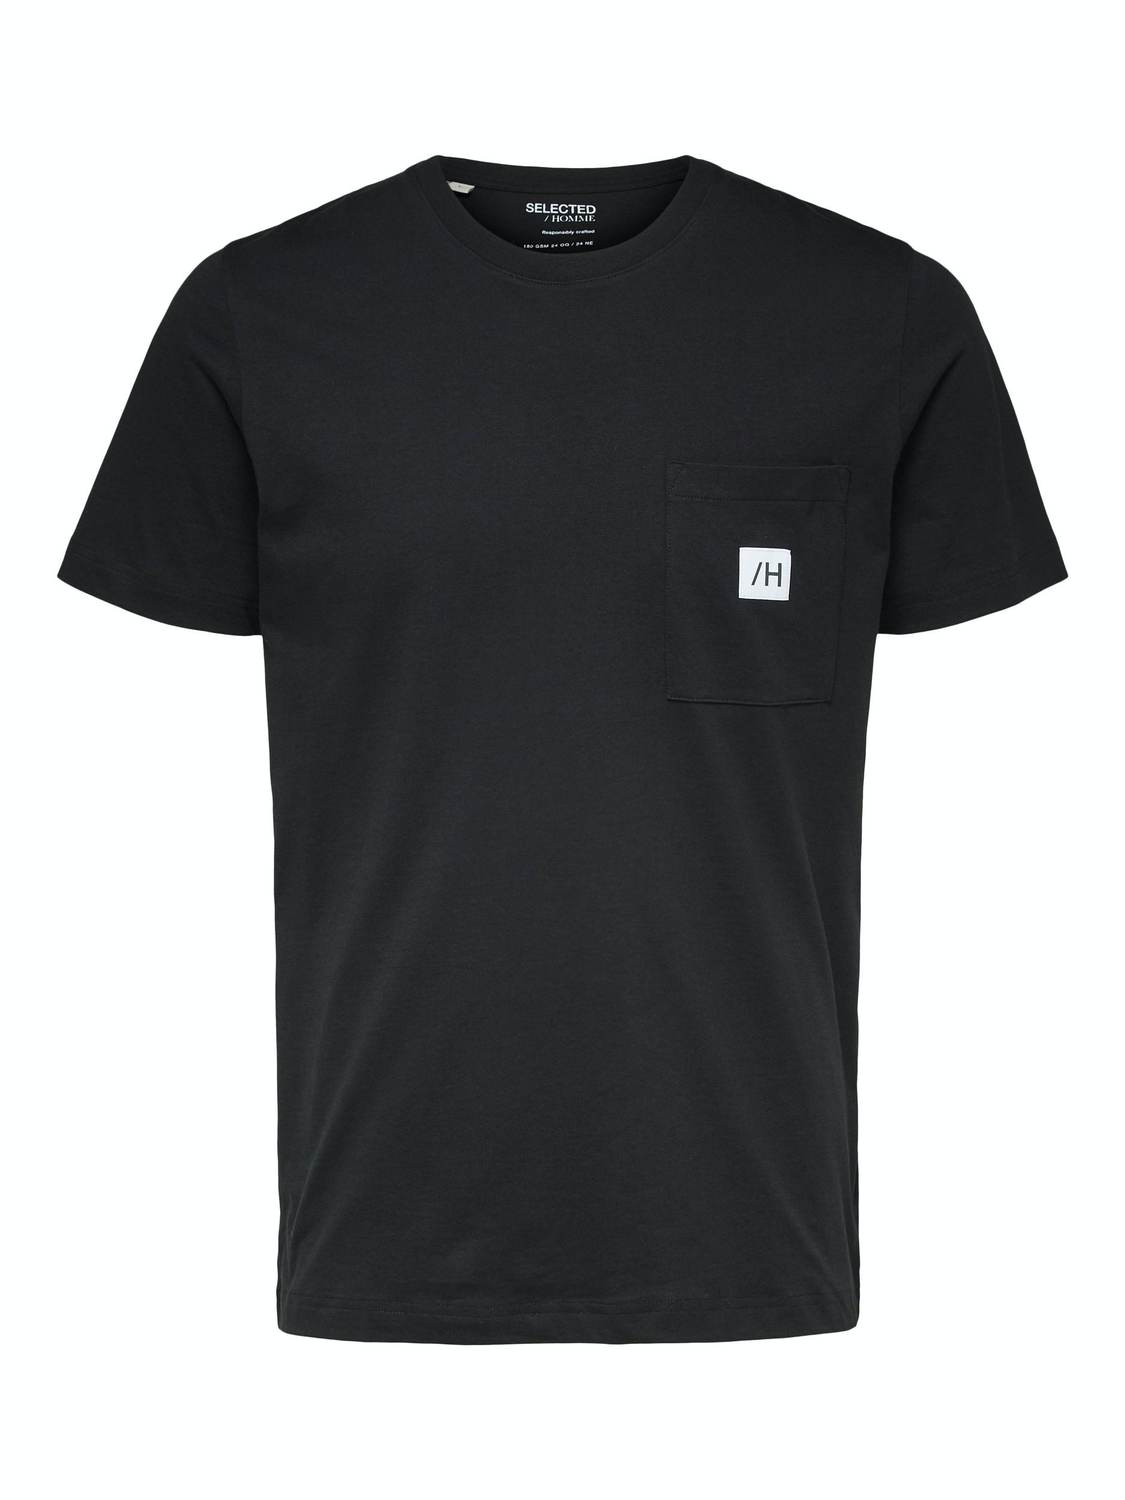 SELECTED T-SHIRT SLHENZO POCKET BLACK | GATE 36 Hobro